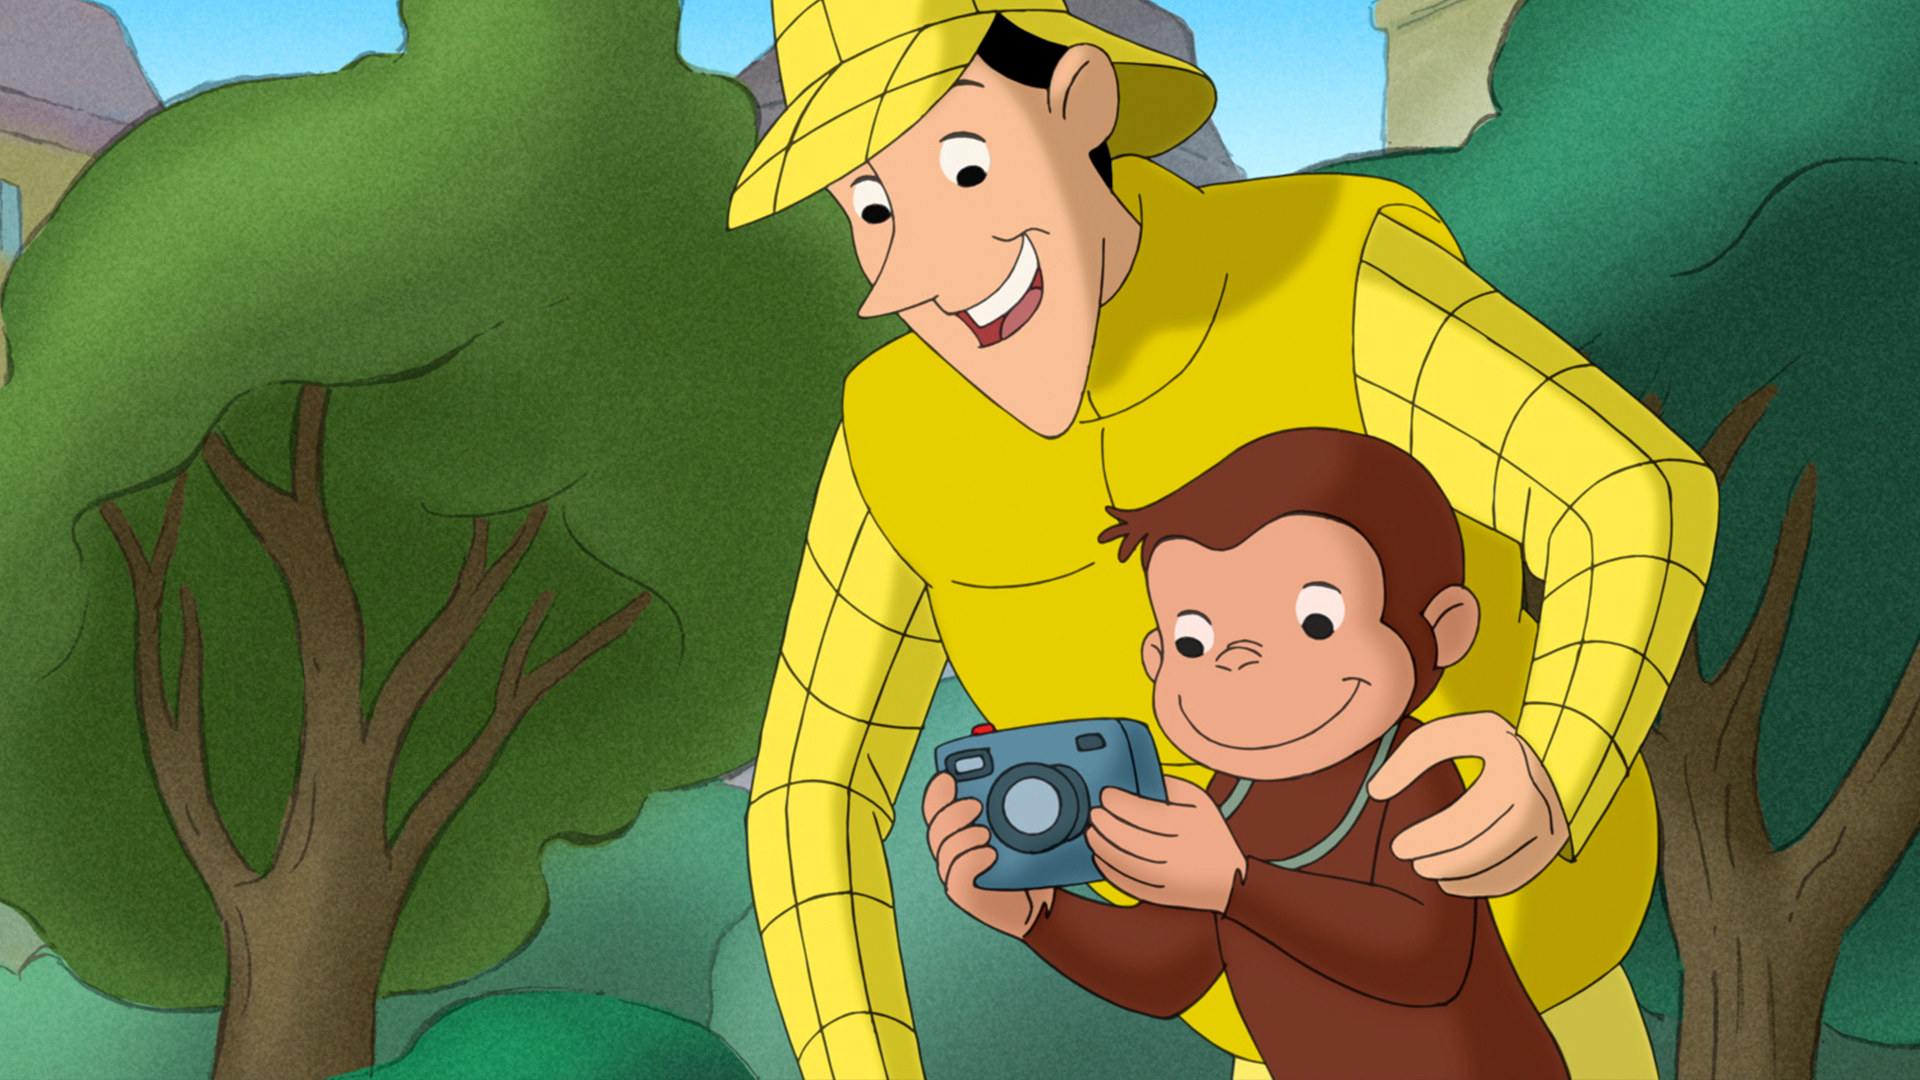 curious george looking into a camera with the man in yellow